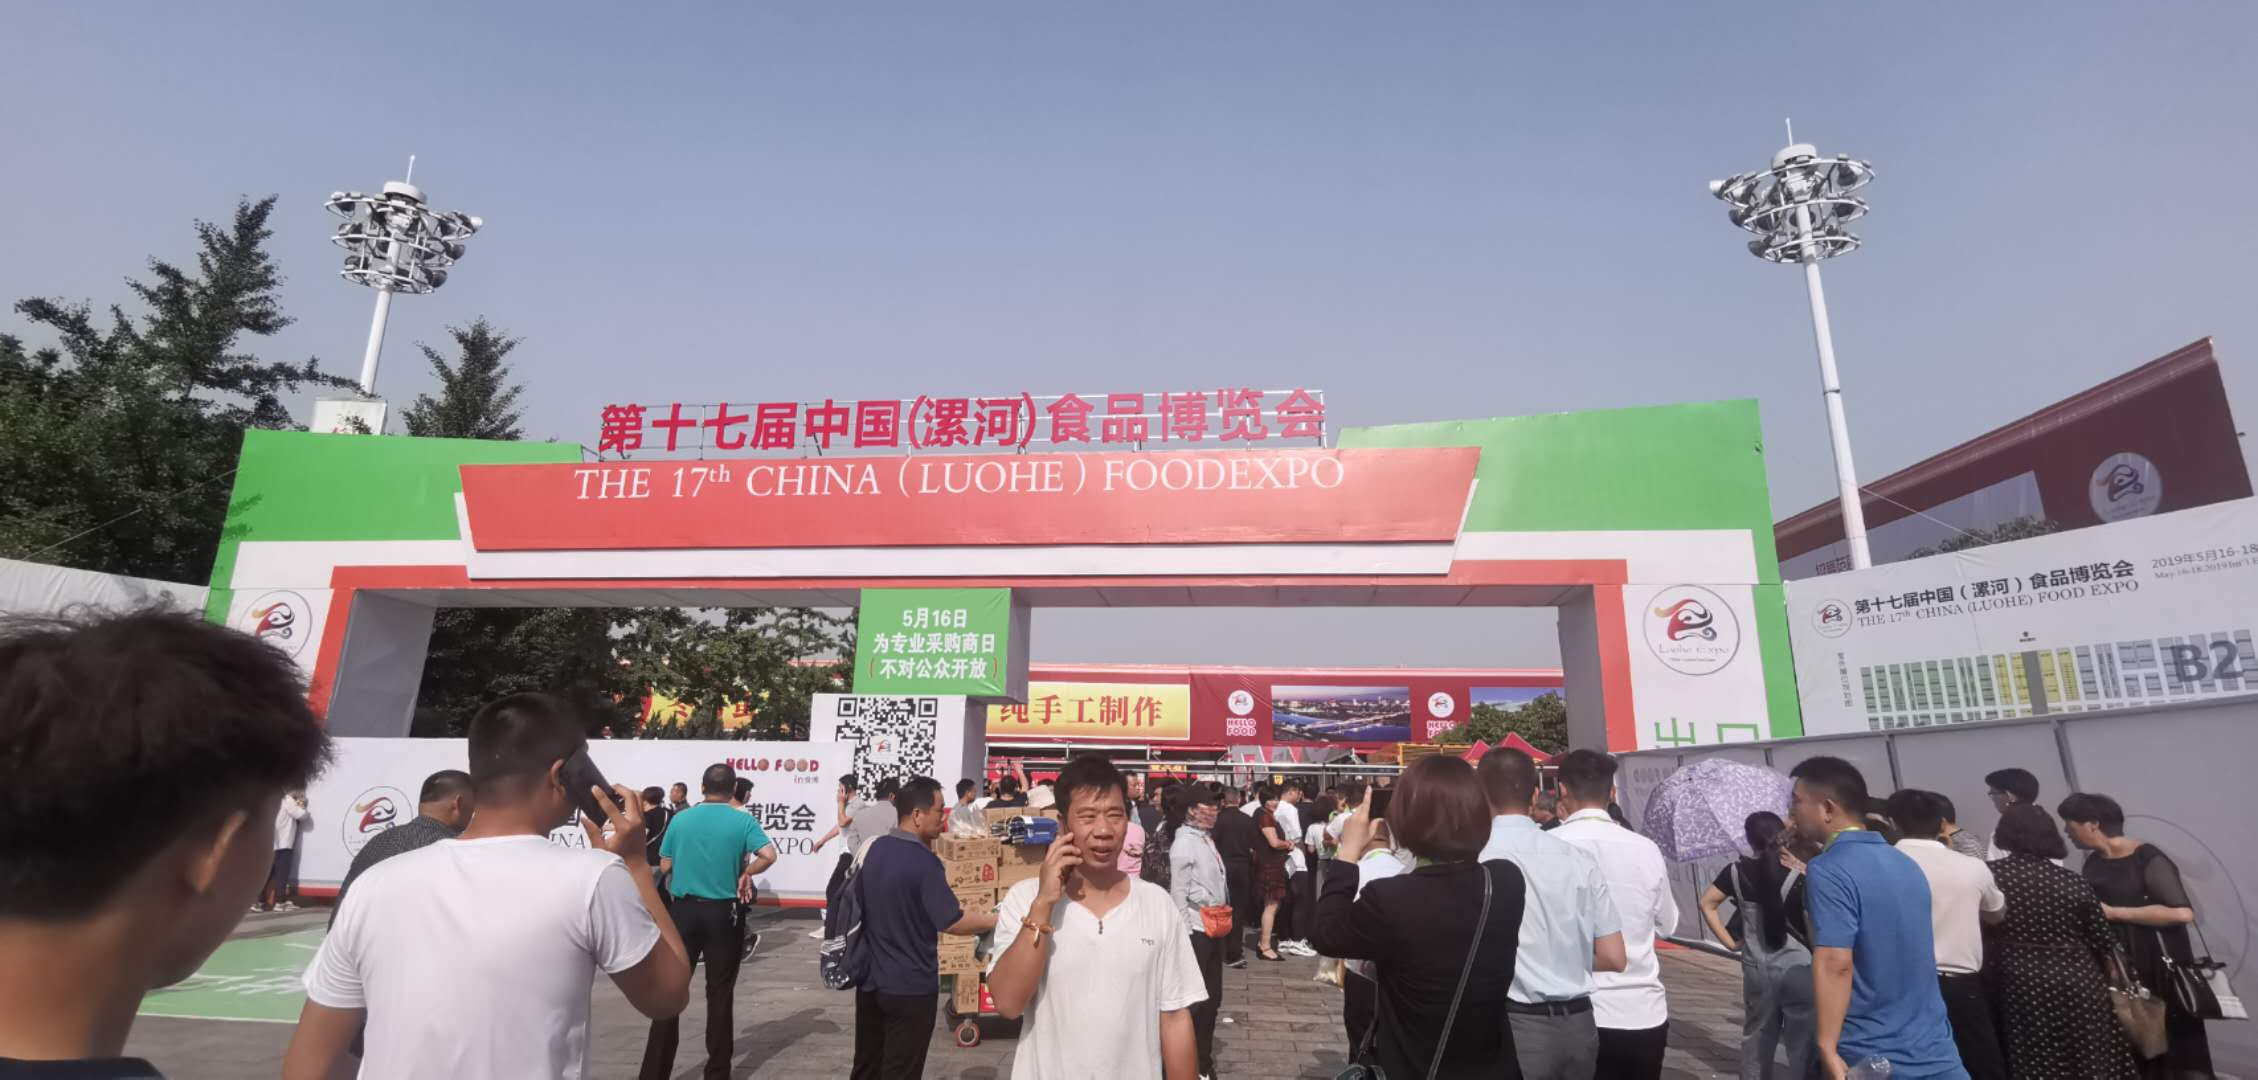 Luohe Food Machinery Exhibition 1